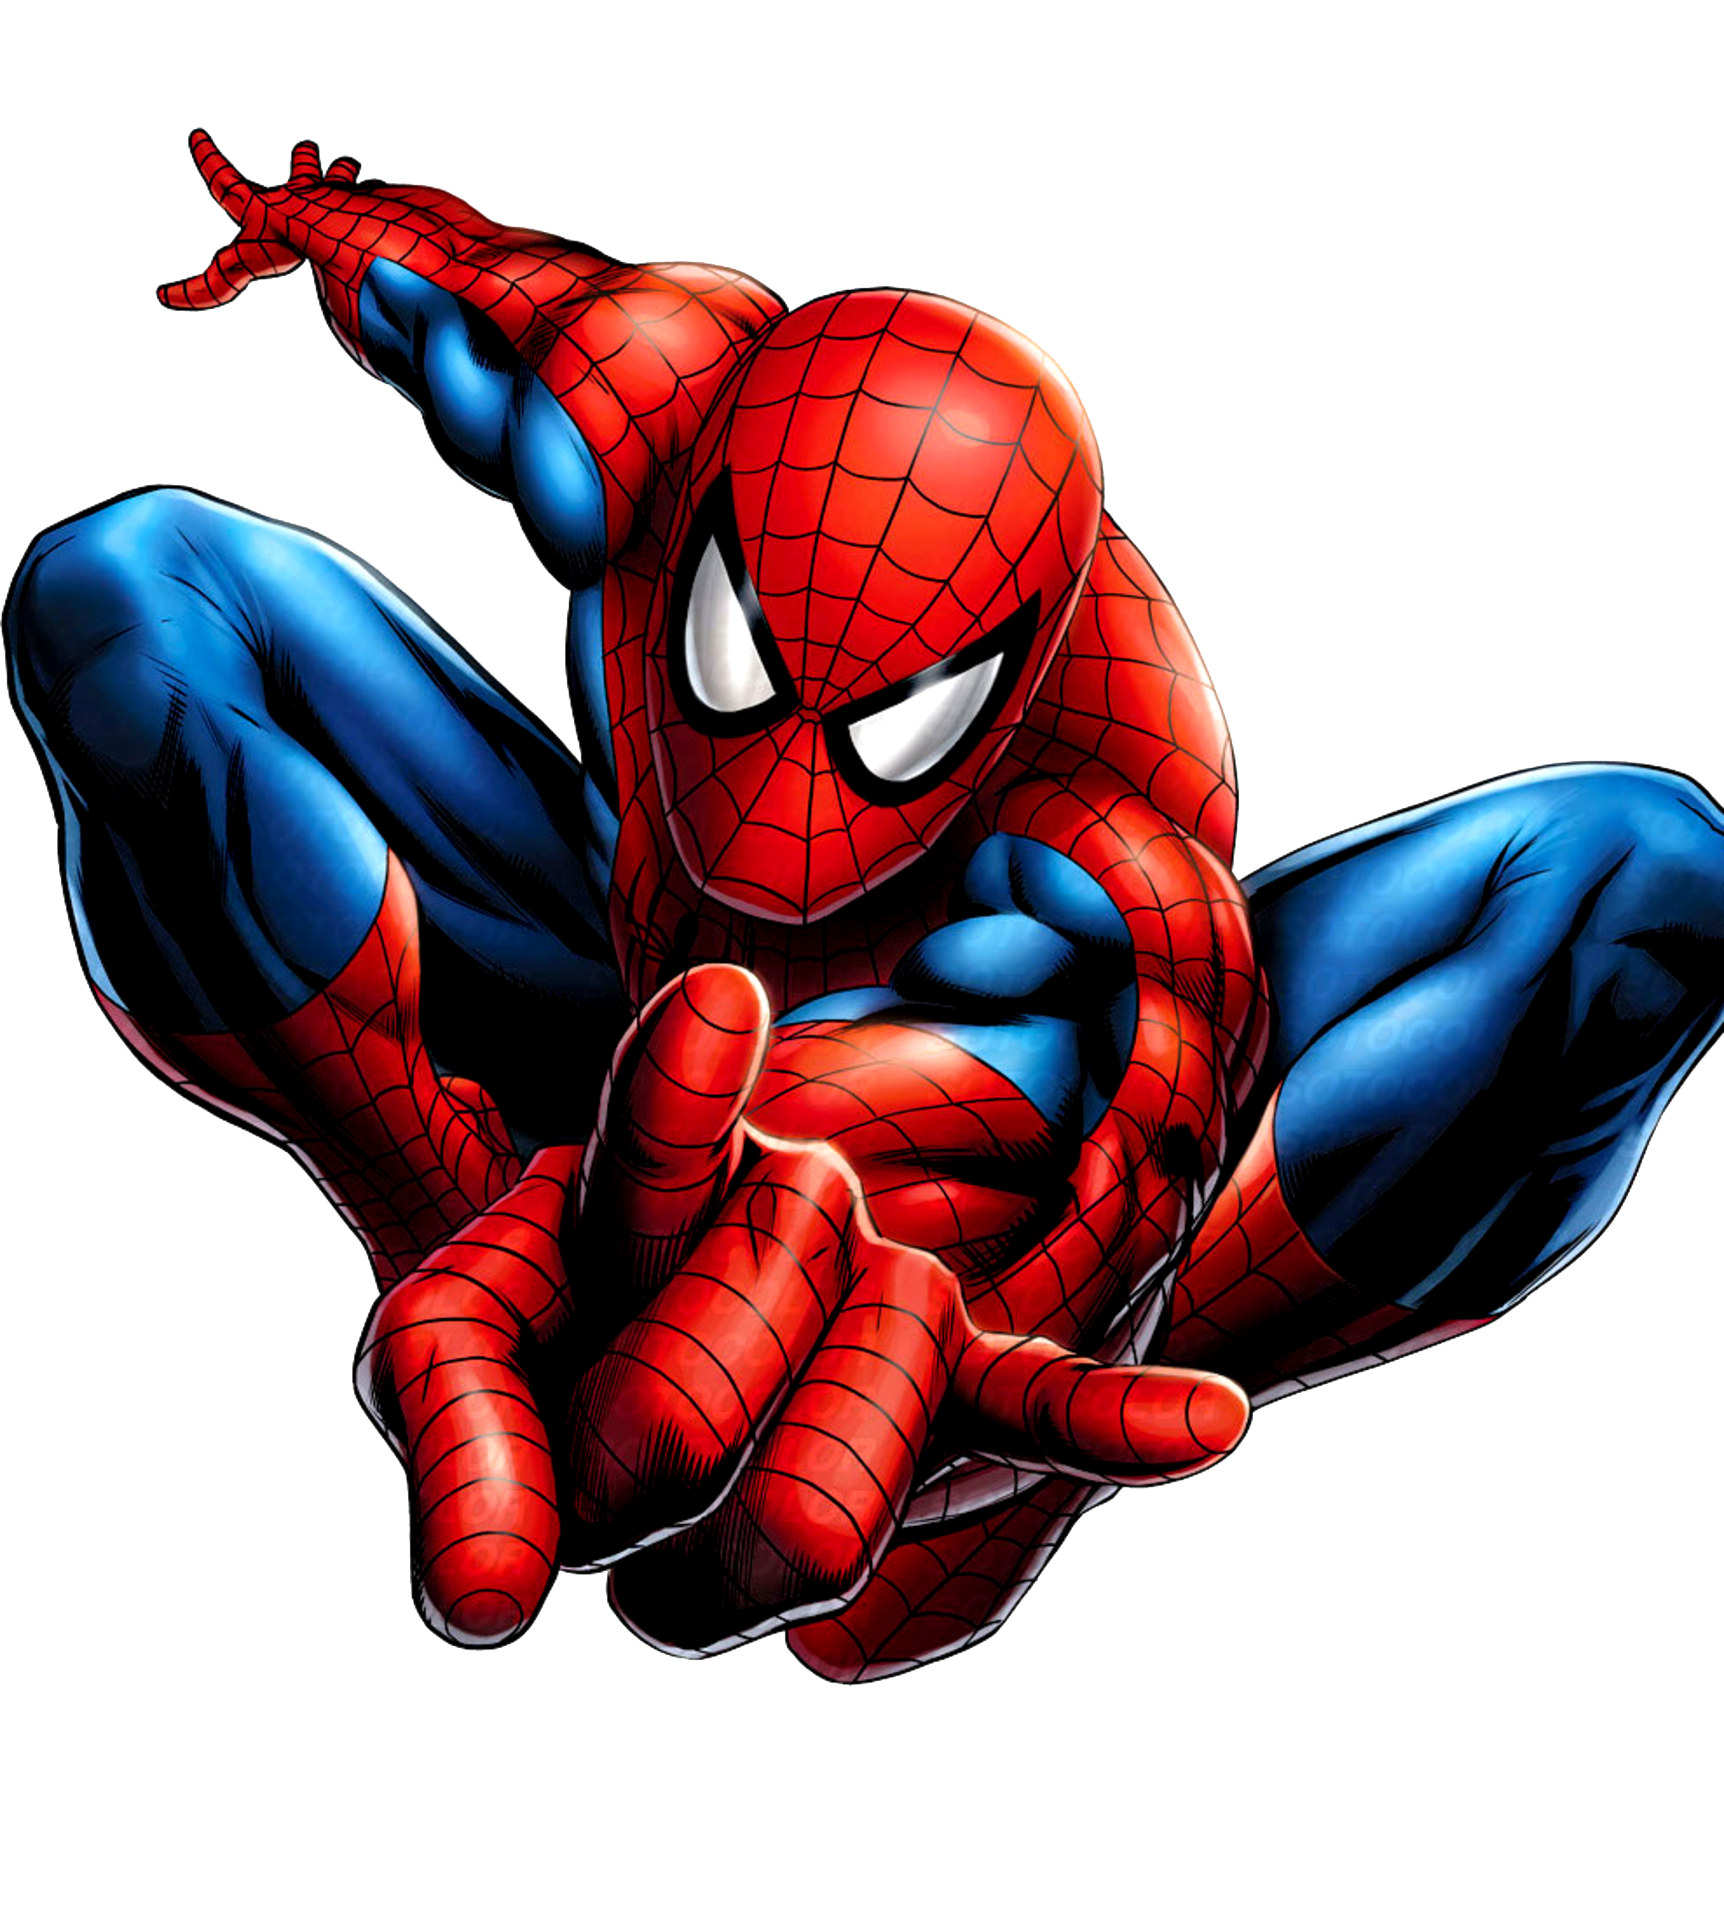 Classic spider man by jprart - Image spiderman ...